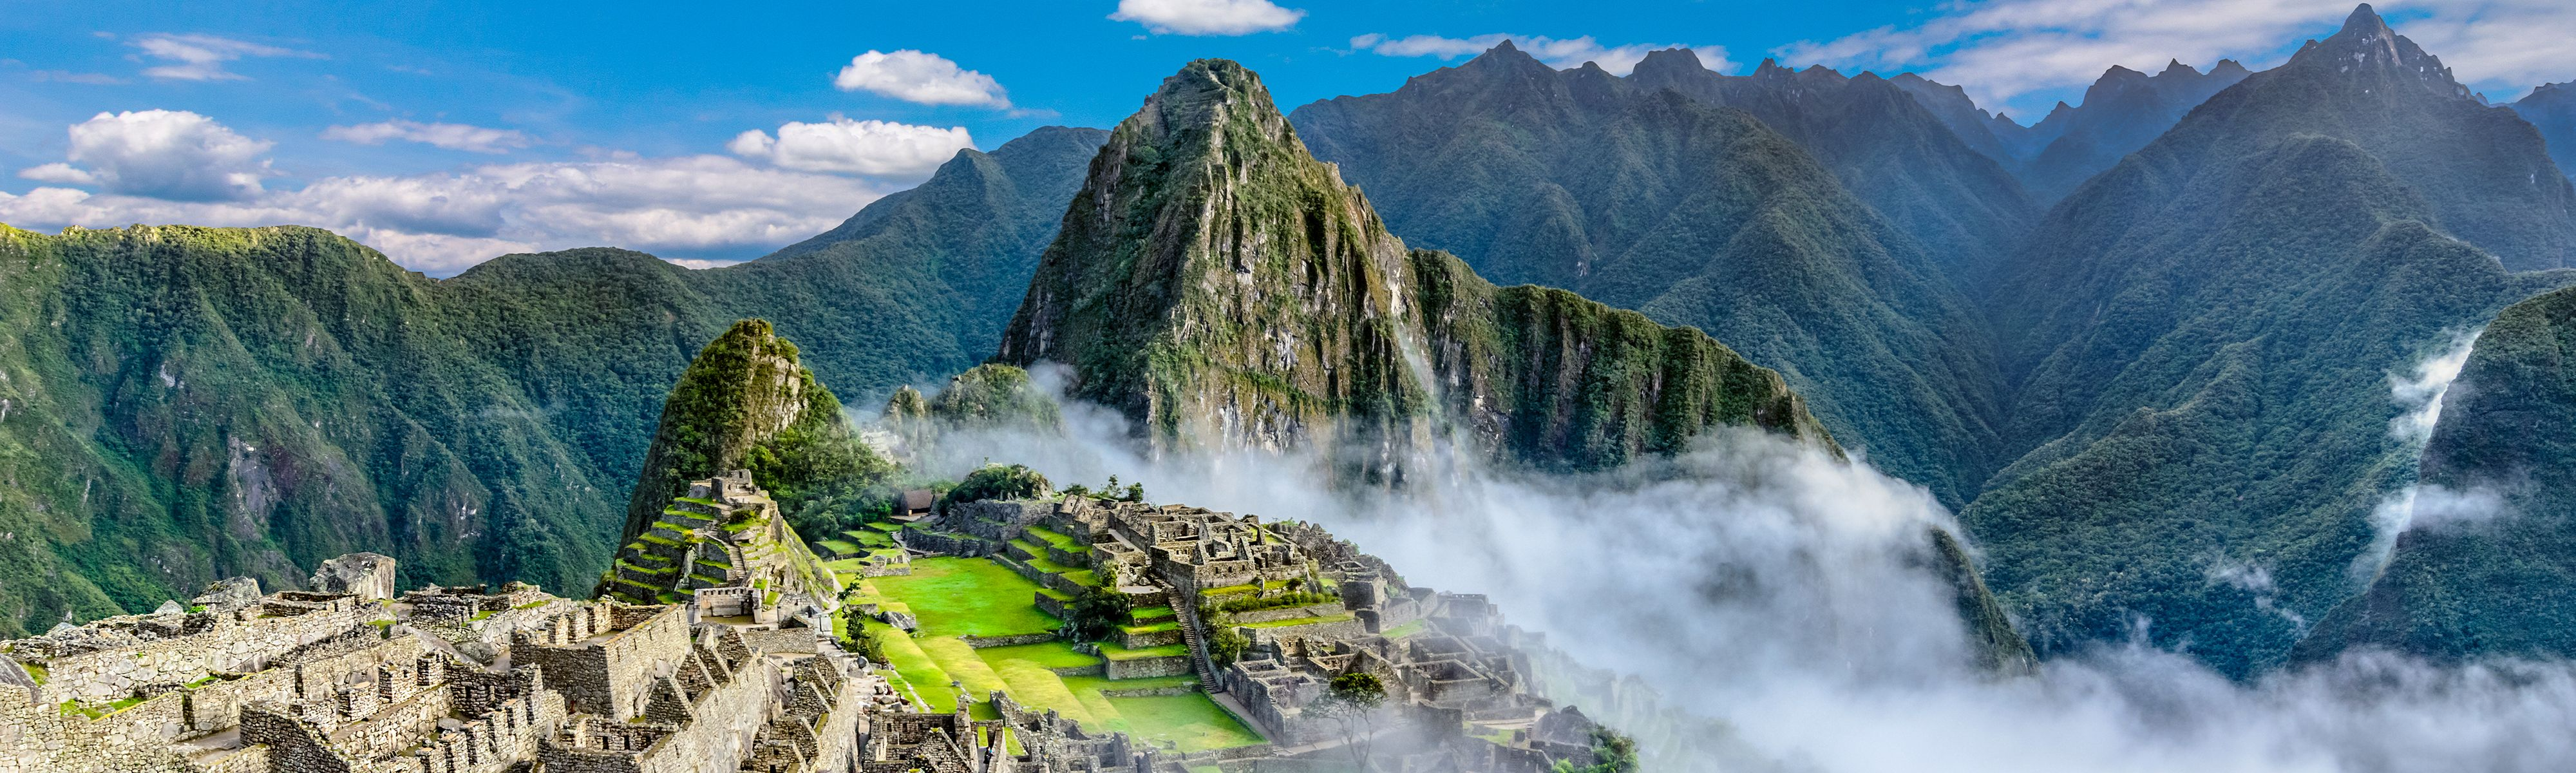 machu picchu with cloud going through mountain range in peru